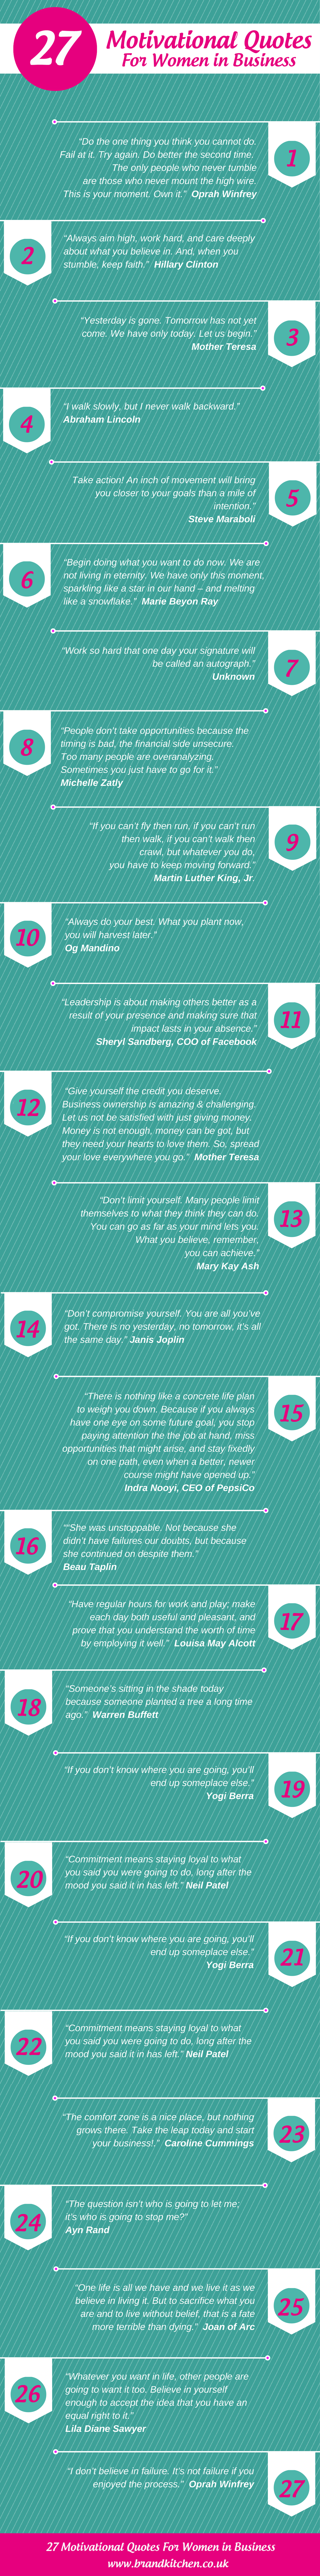 27 Motivational Quotes For Women in Business PNG